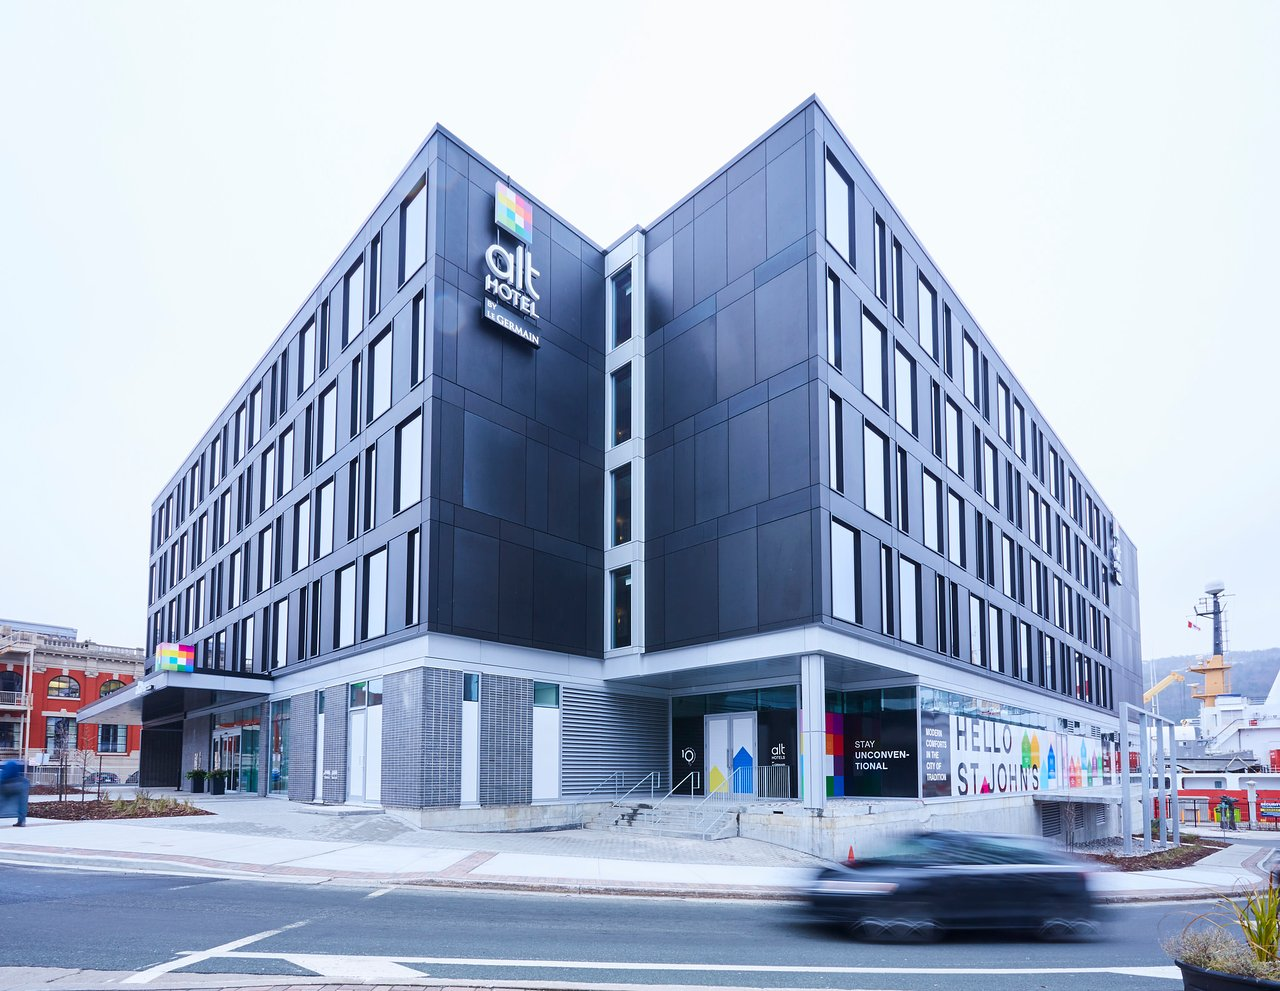 cb21a4fe8 Alt Hotel St. John's - UPDATED 2019 Prices, Reviews & Photos ...